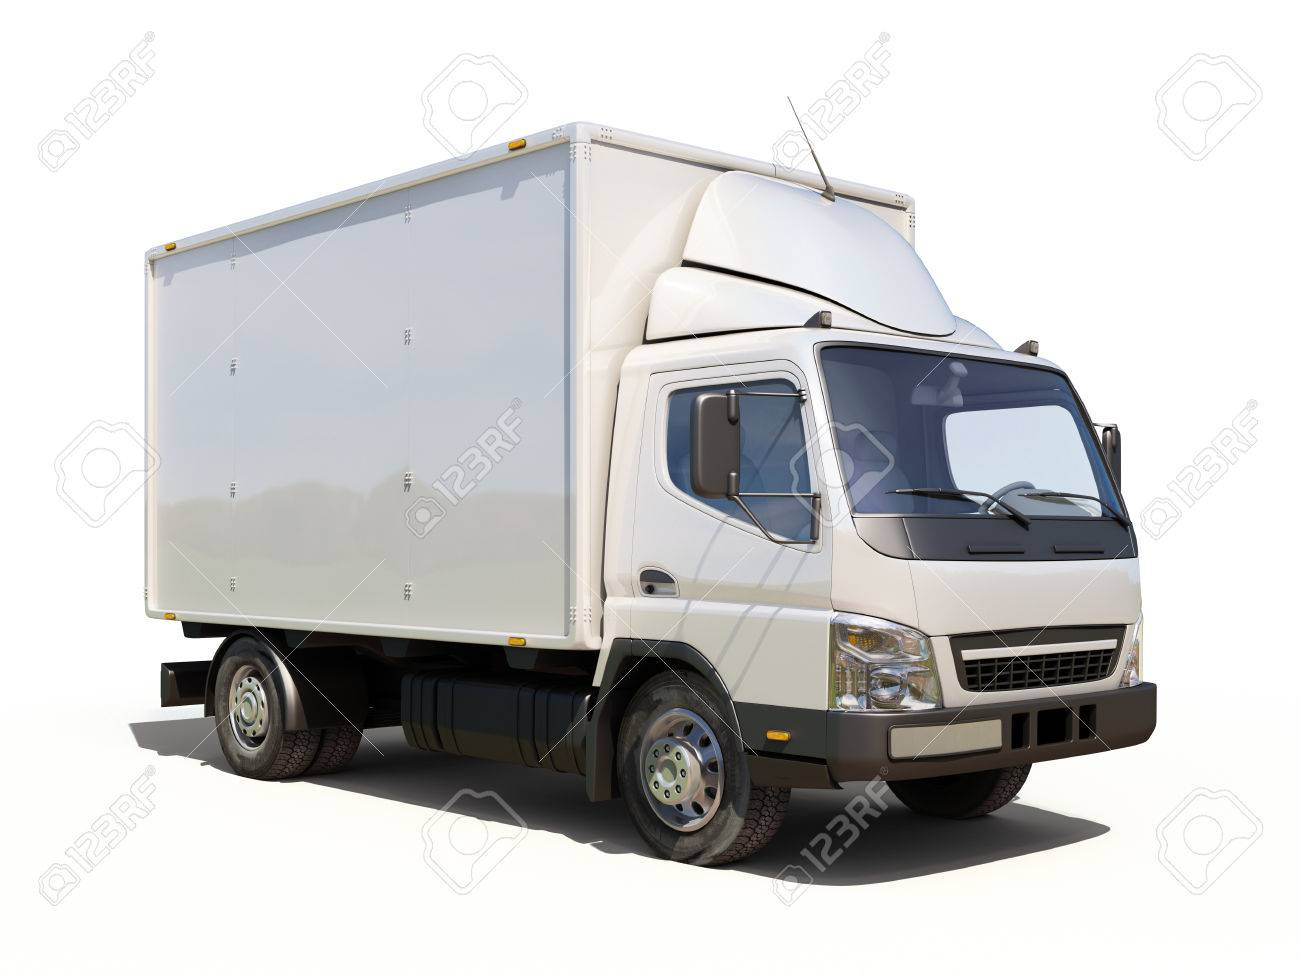 White commercial delivery truck on a ligth background with shadow - 22490622